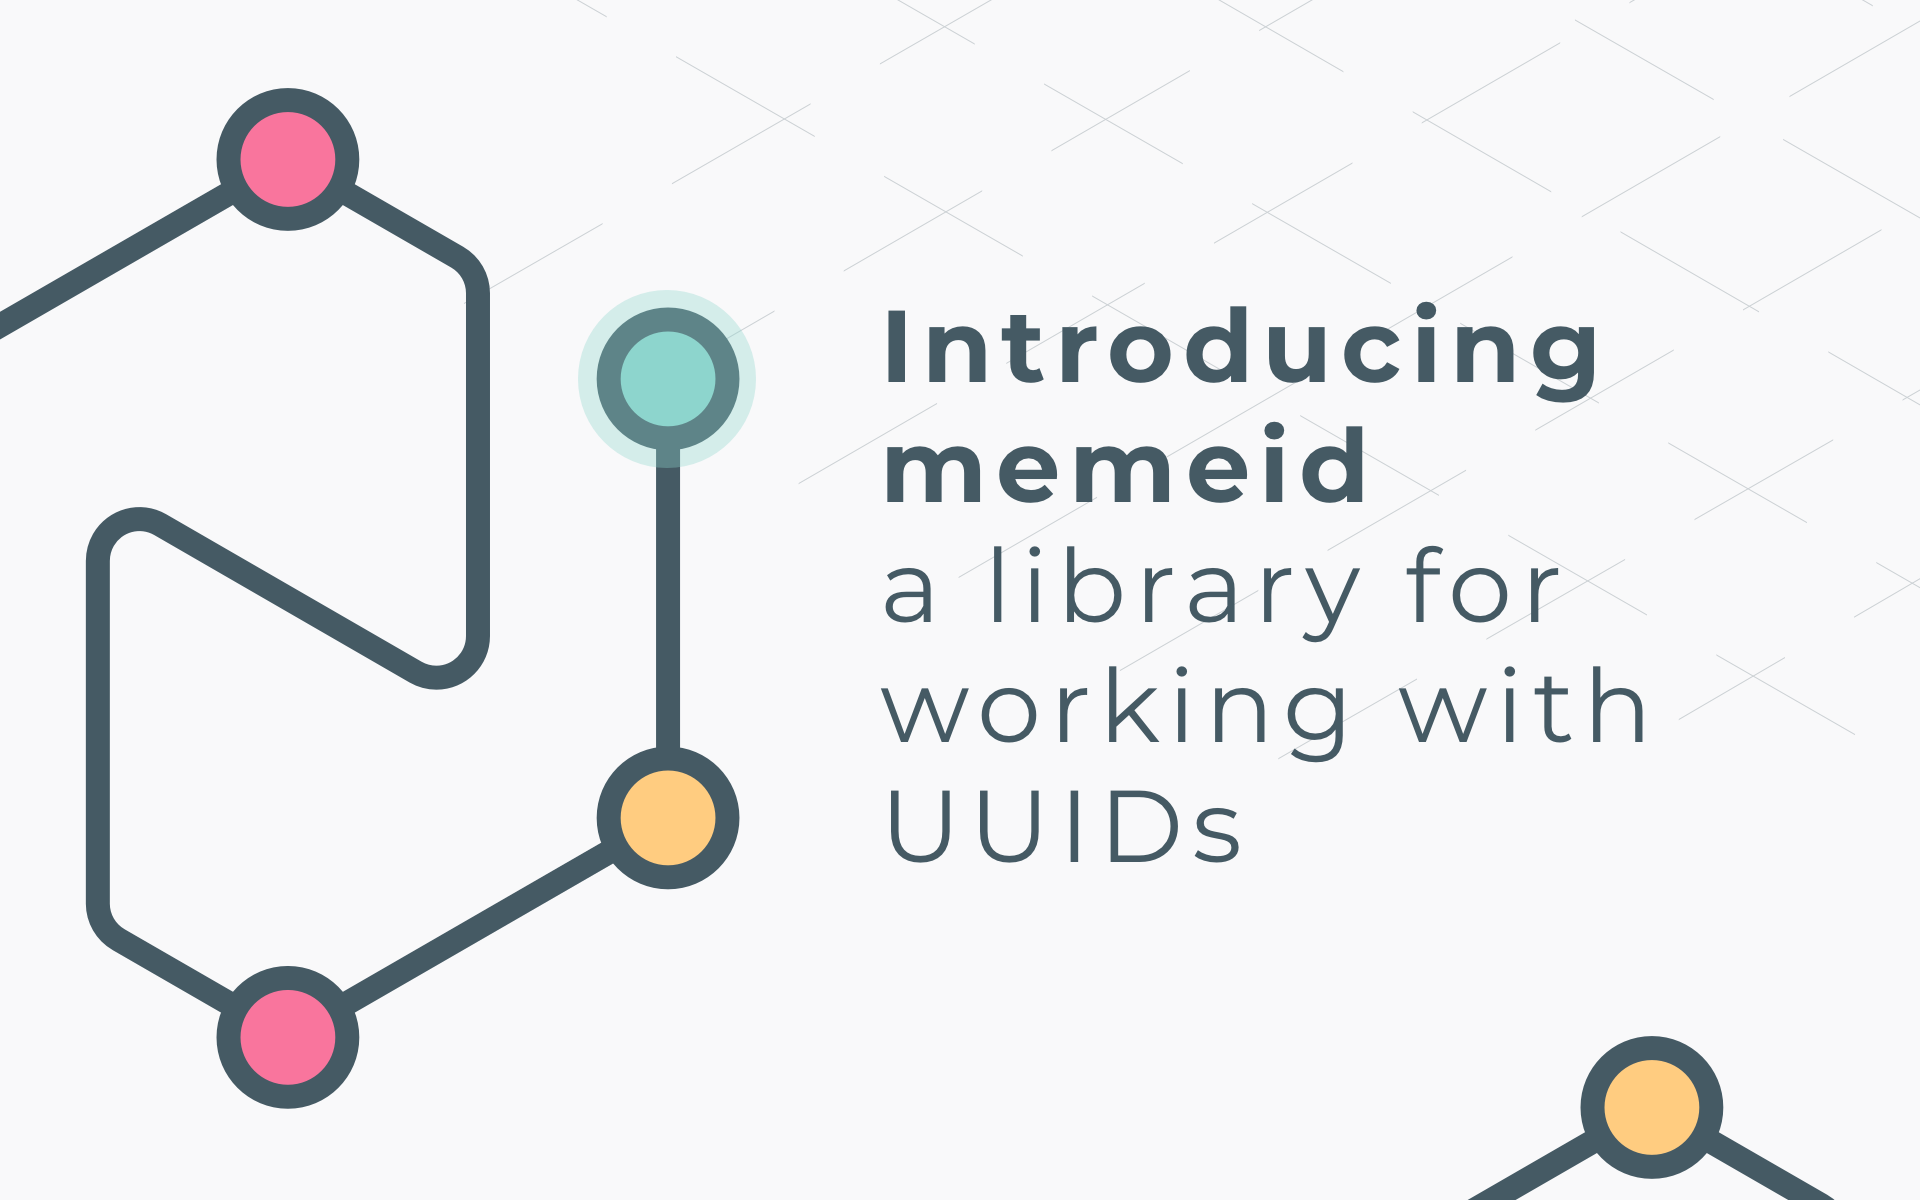 Introducing memeid: An RFC-compliant library for working with UUIDs